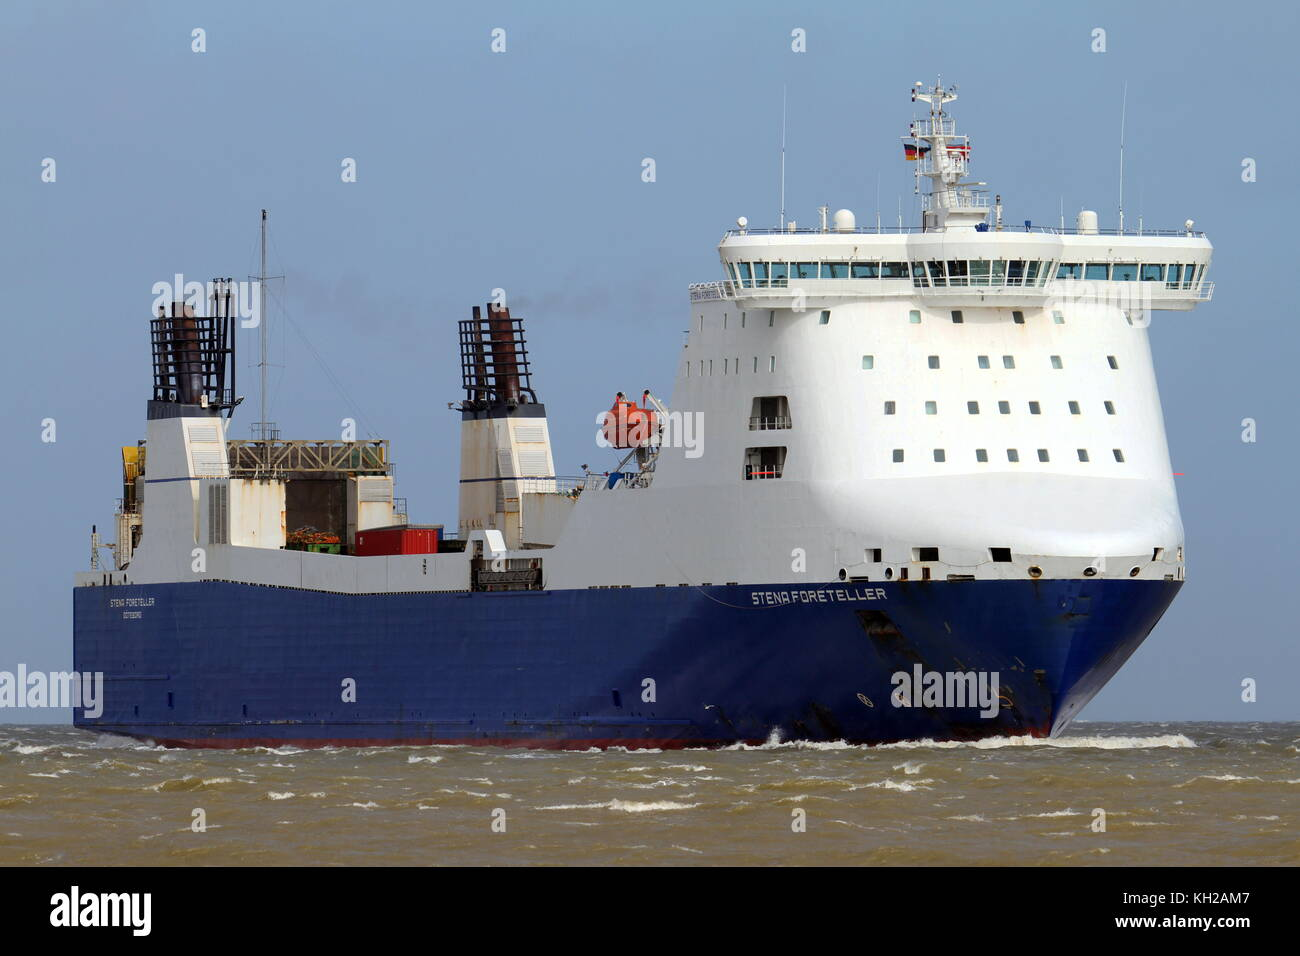 The Ro-Ro ship Sten Foreteller is waiting on April 1, 2015, in front of the port of Cuxhaven. - Stock Image